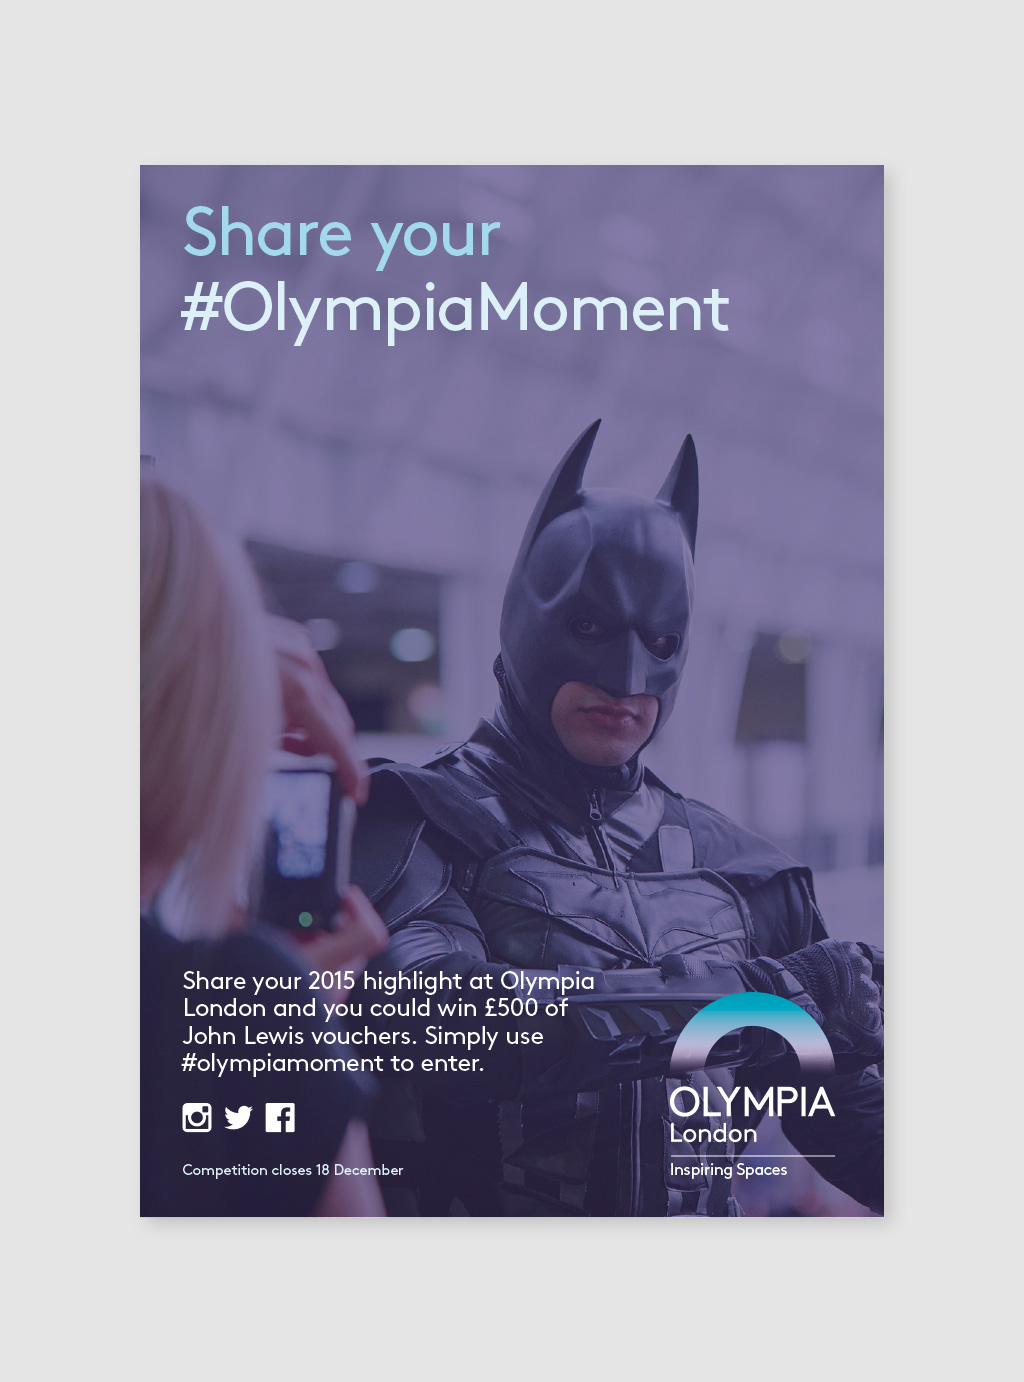 consumer campaign encouraging visitors to share their experiences of Olympia London